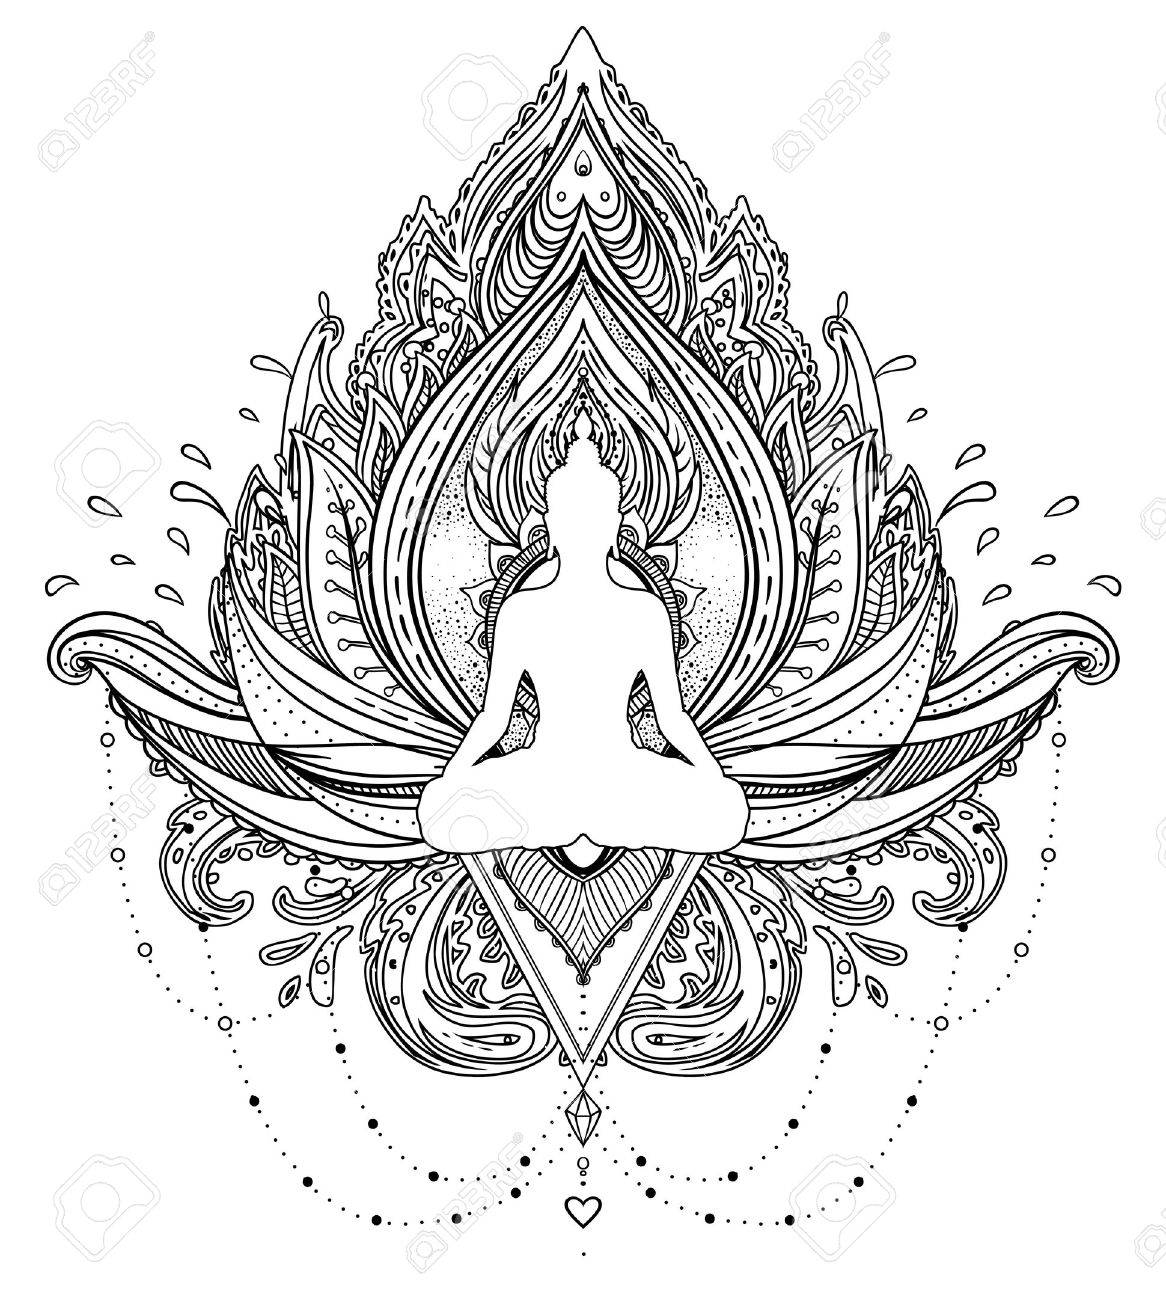 Vector ornamental Lotus flower with silhouette of Buddha, ethnic art, Indian paisley. Hand drawn illustration. Invitation element. Tattoo, spirituality, boho, magic symbol. Coloring book for adults. - 79138345